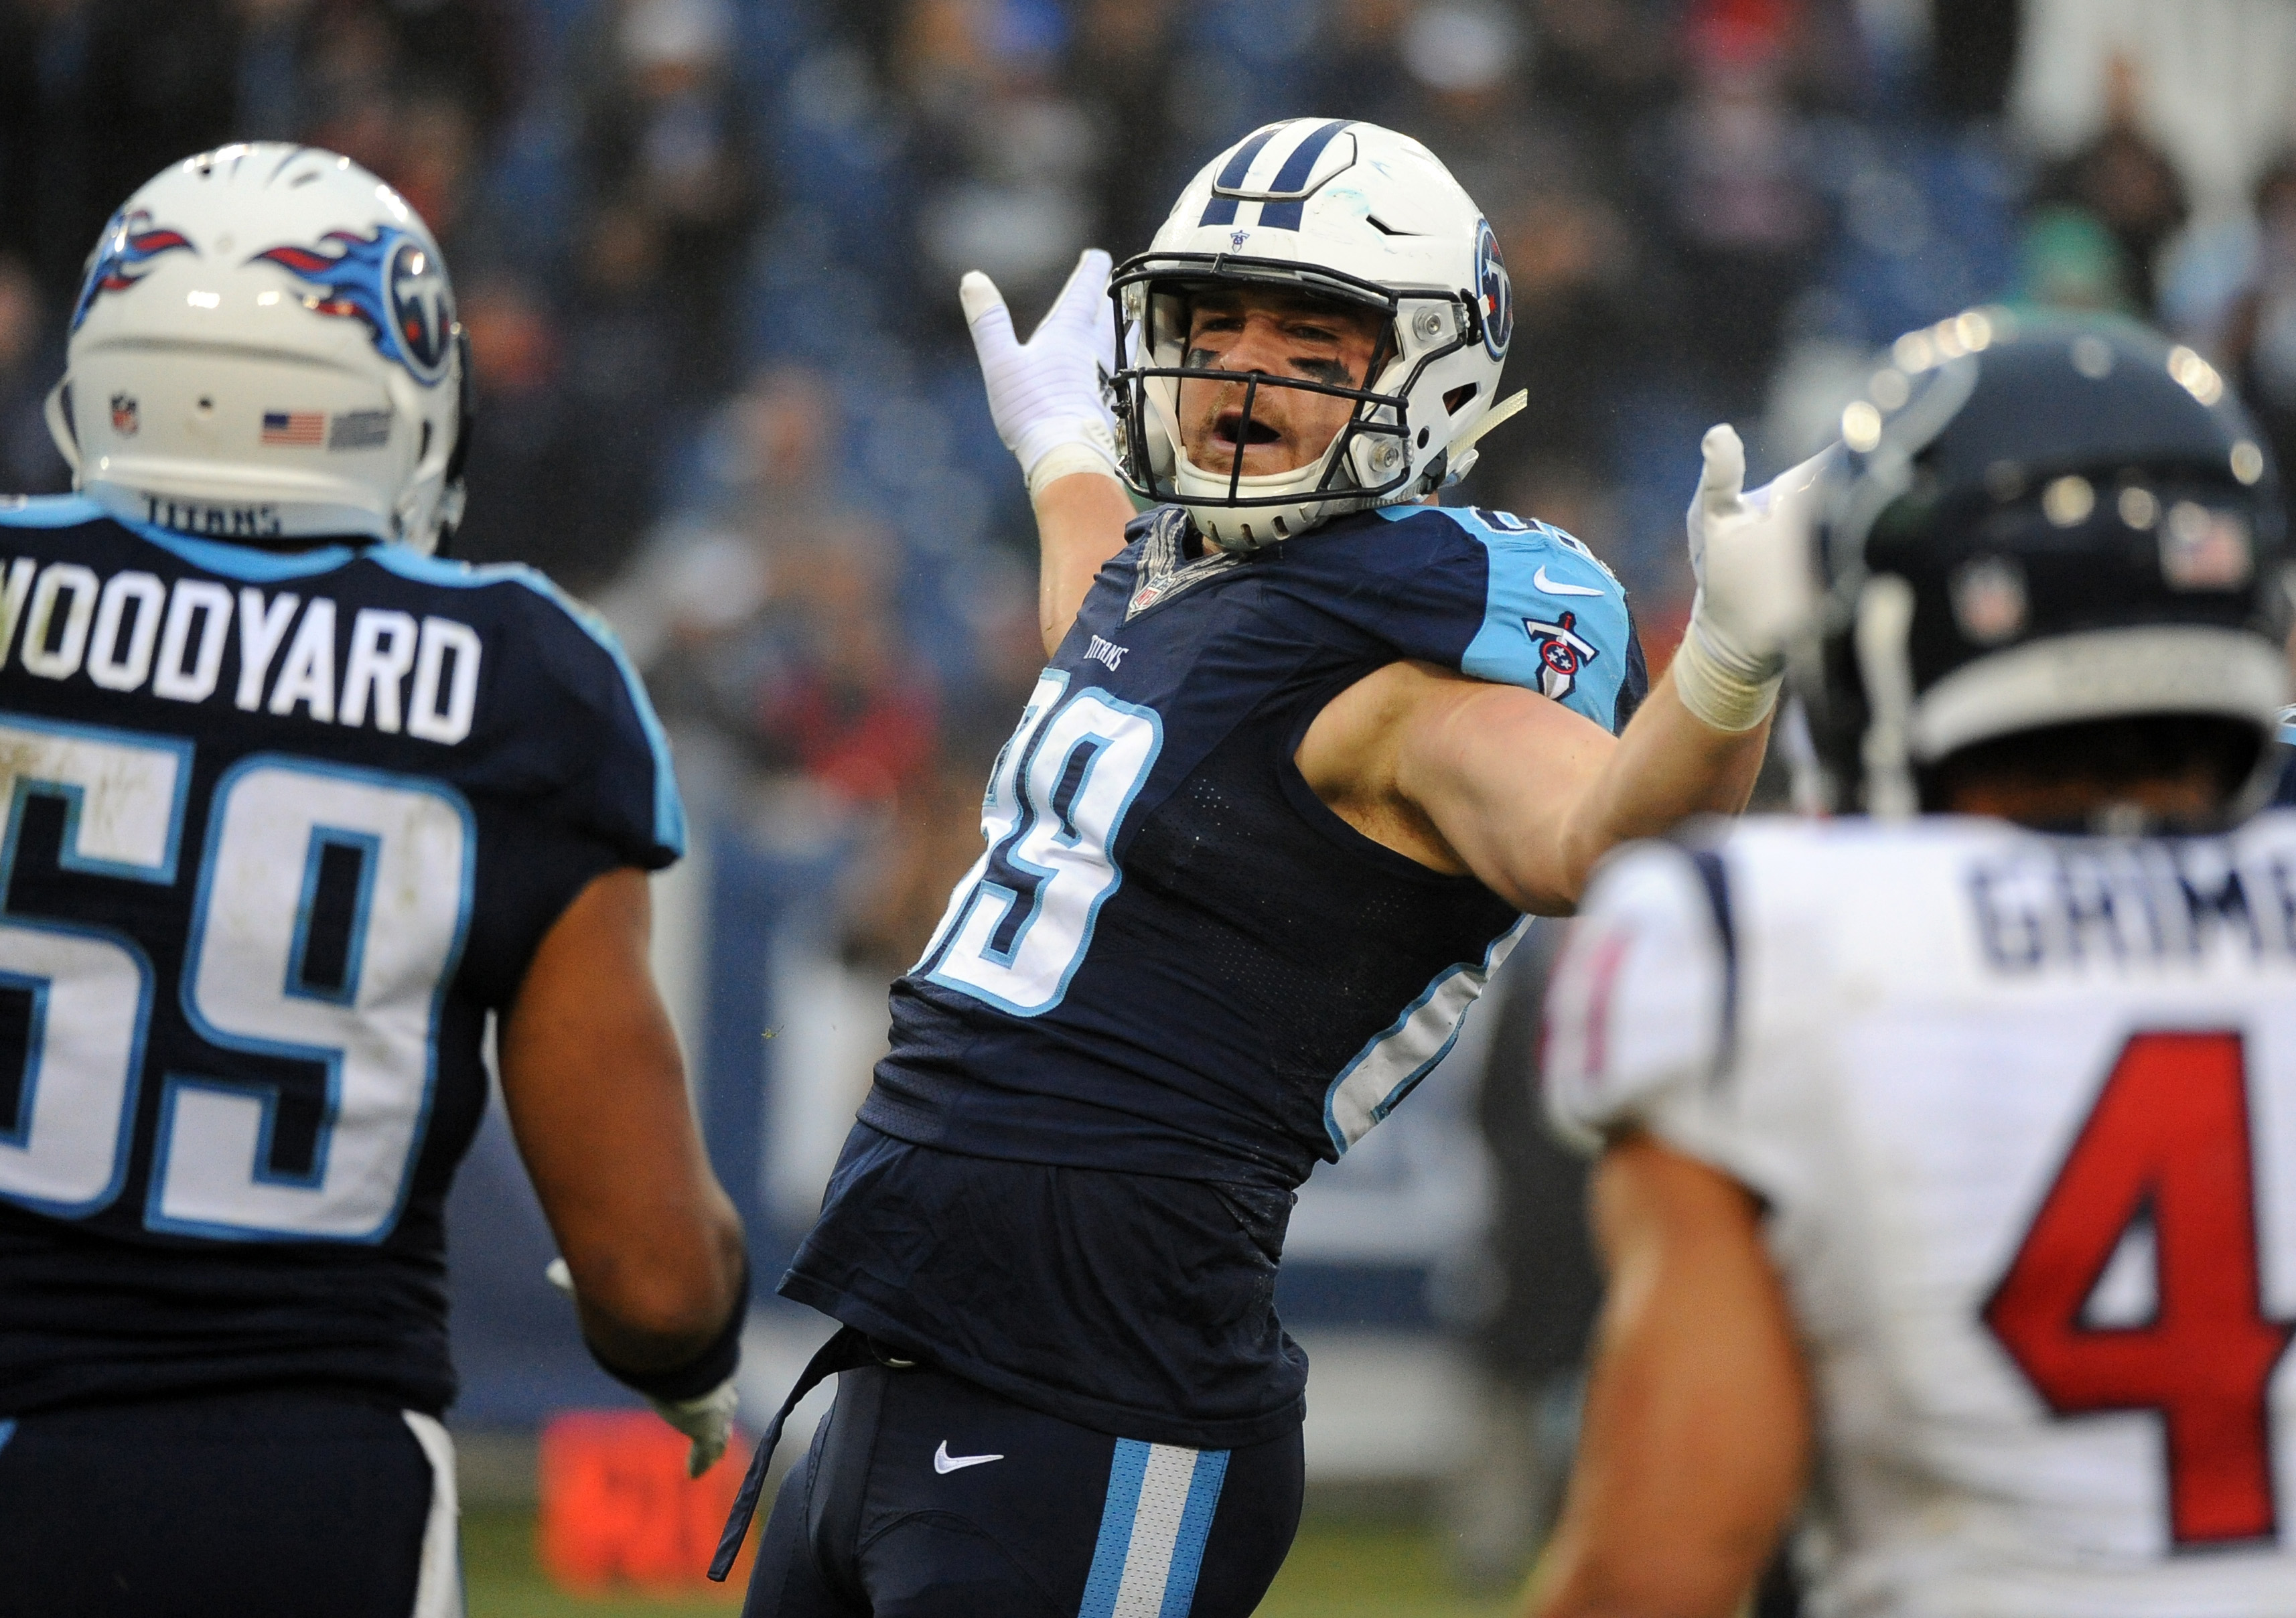 9781892-nfl-houston-texans-at-tennessee-titans